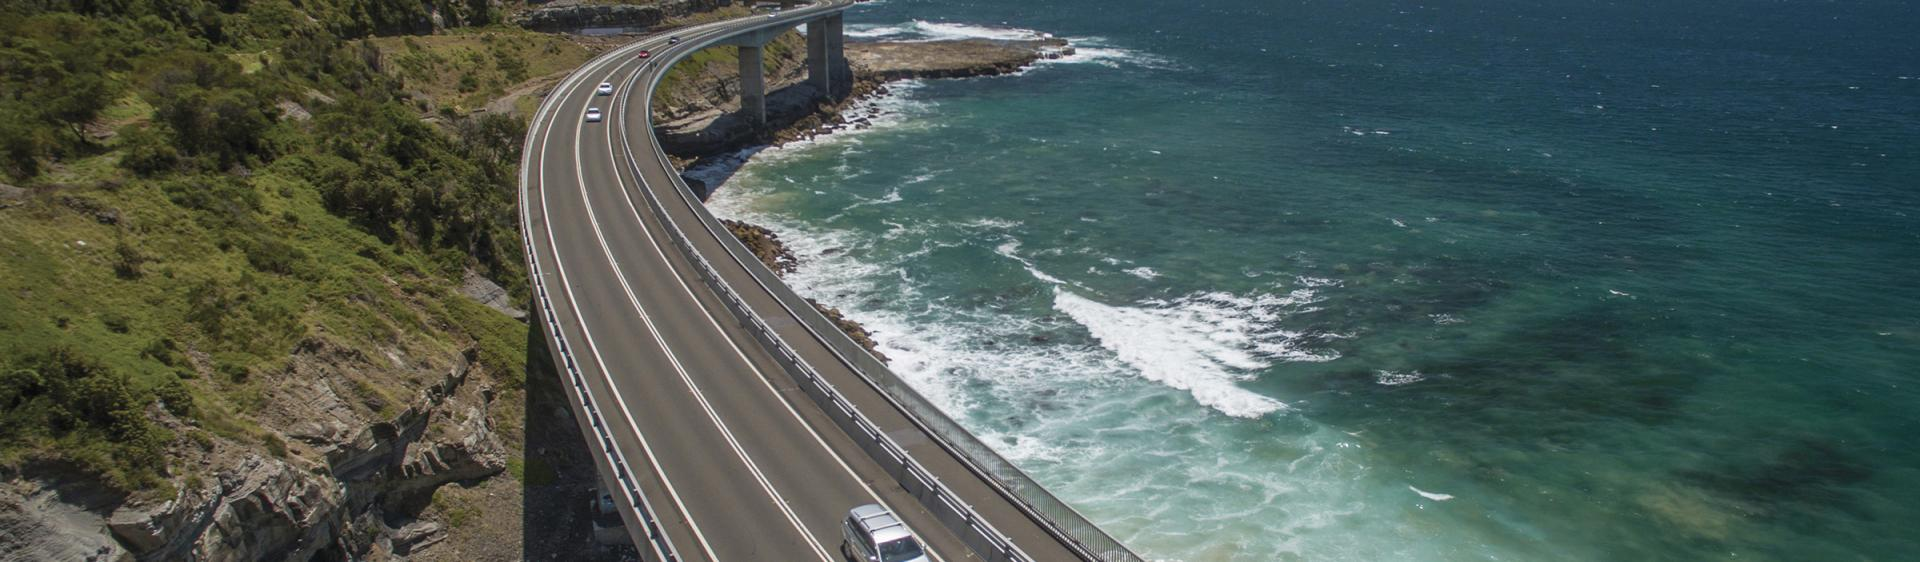 Aerial of a car taking the scenic route over Sea Cliff Bridge, Clifton